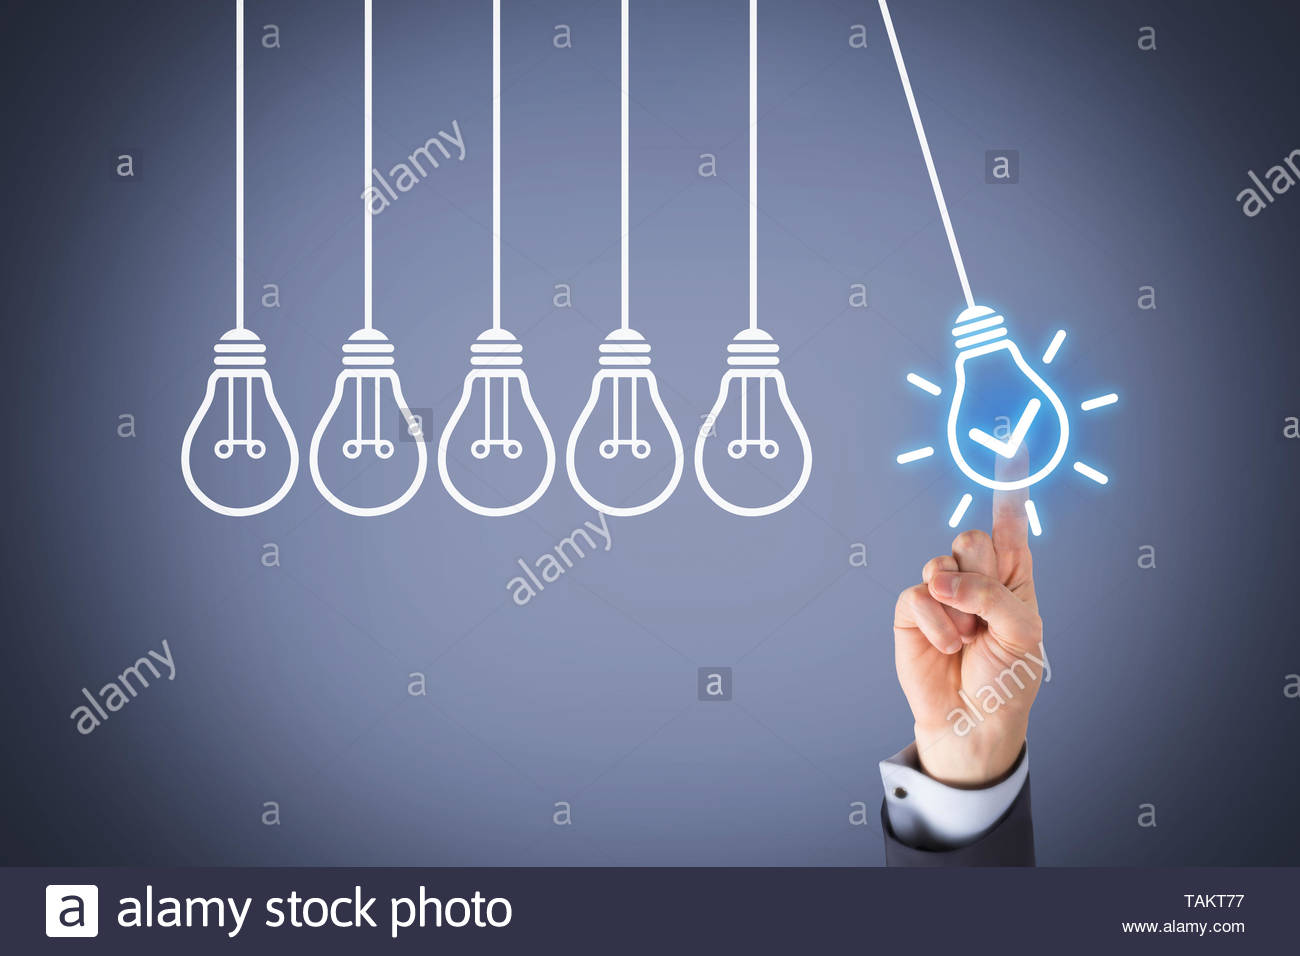 Idea Solution Concepts with Light Bulb on Visual Screen Stock Photo